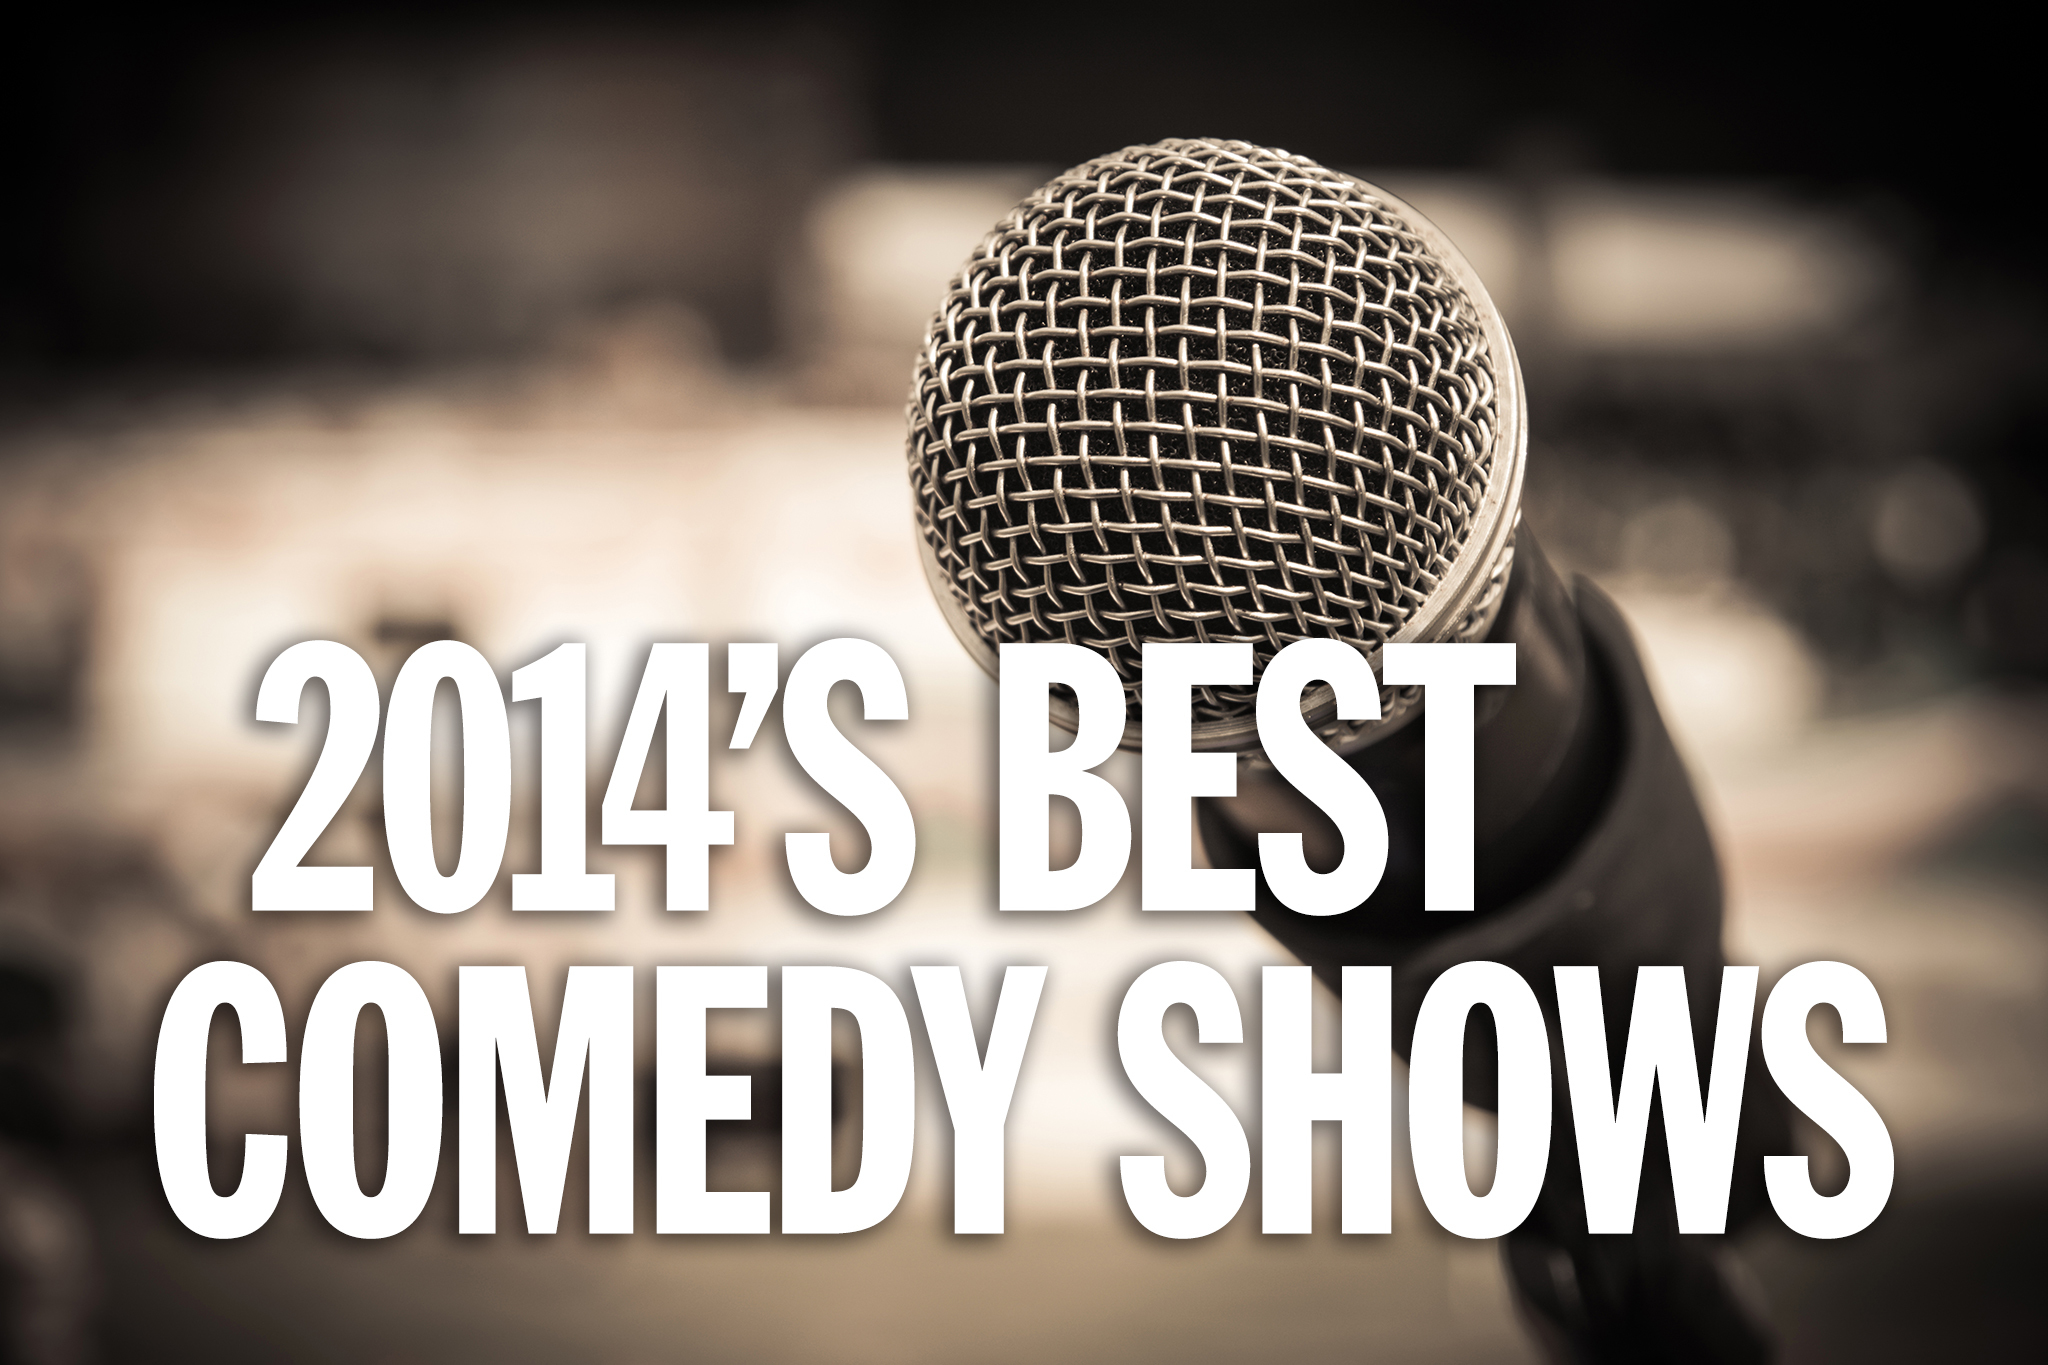 The ten best comedy shows of 2014